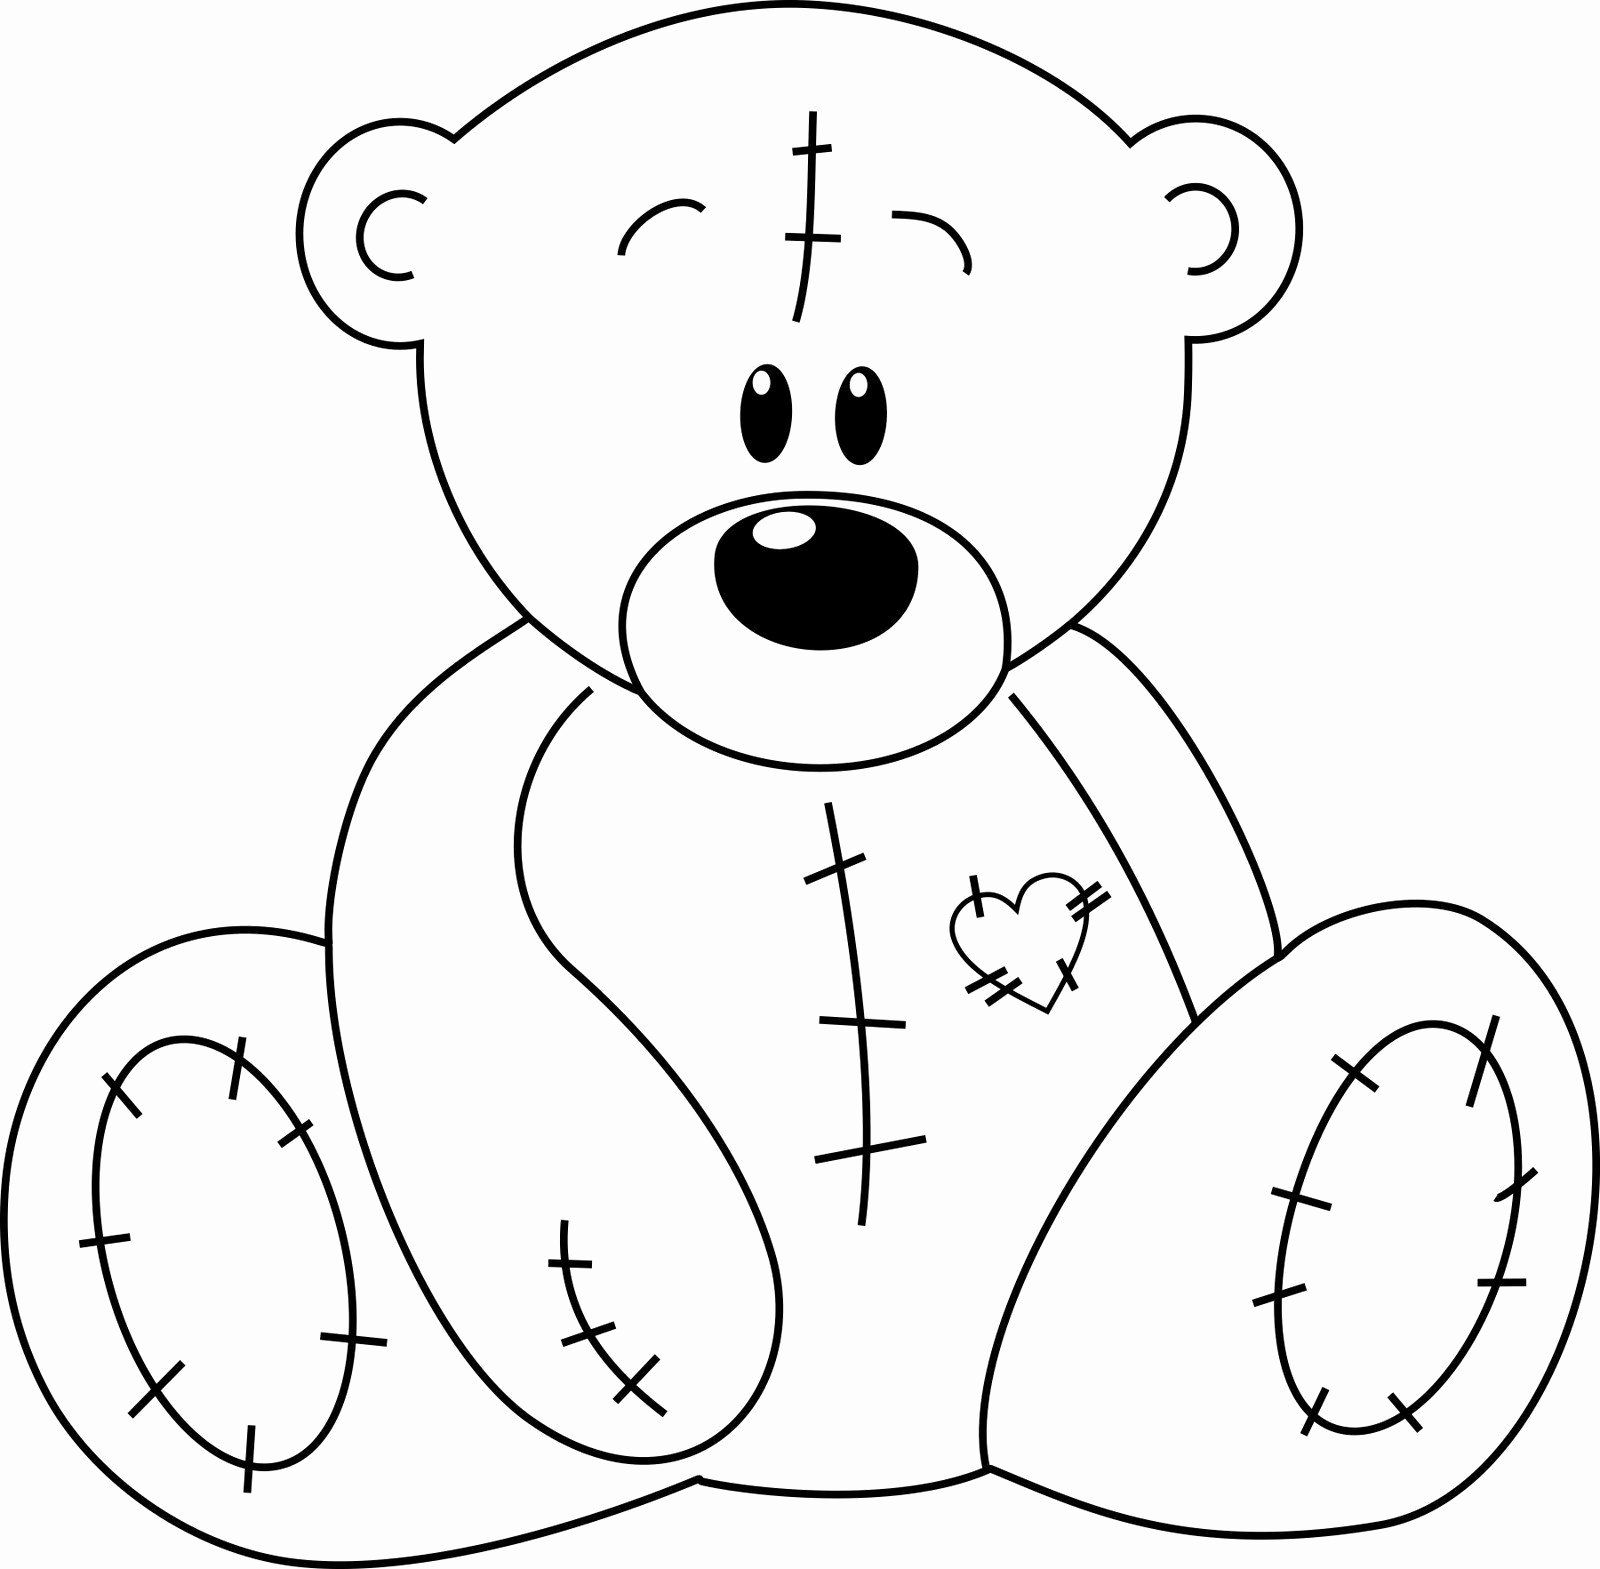 Toys Coloring Book Pdf Best Of Teddy Bear Coloring Page Best Teddy